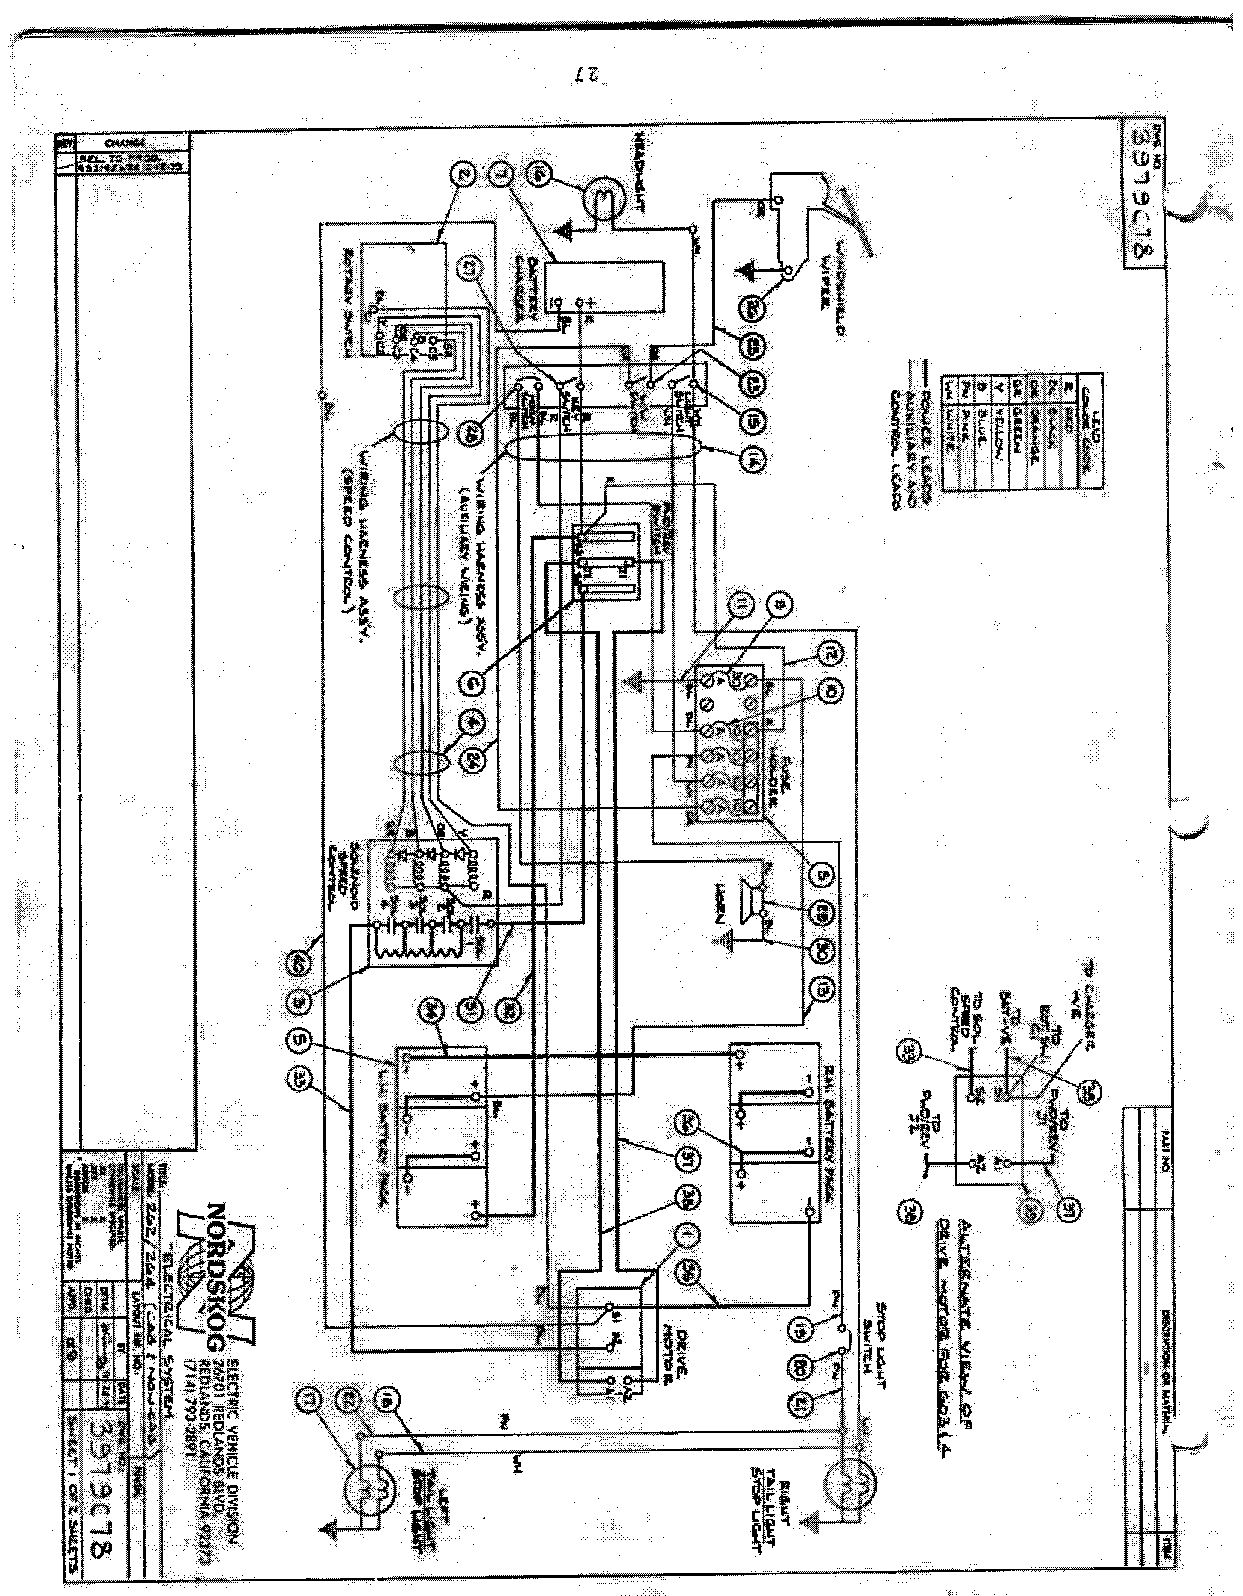 Nordskog262_264 vintagegolfcartparts com westinghouse golf cart wiring diagram at webbmarketing.co